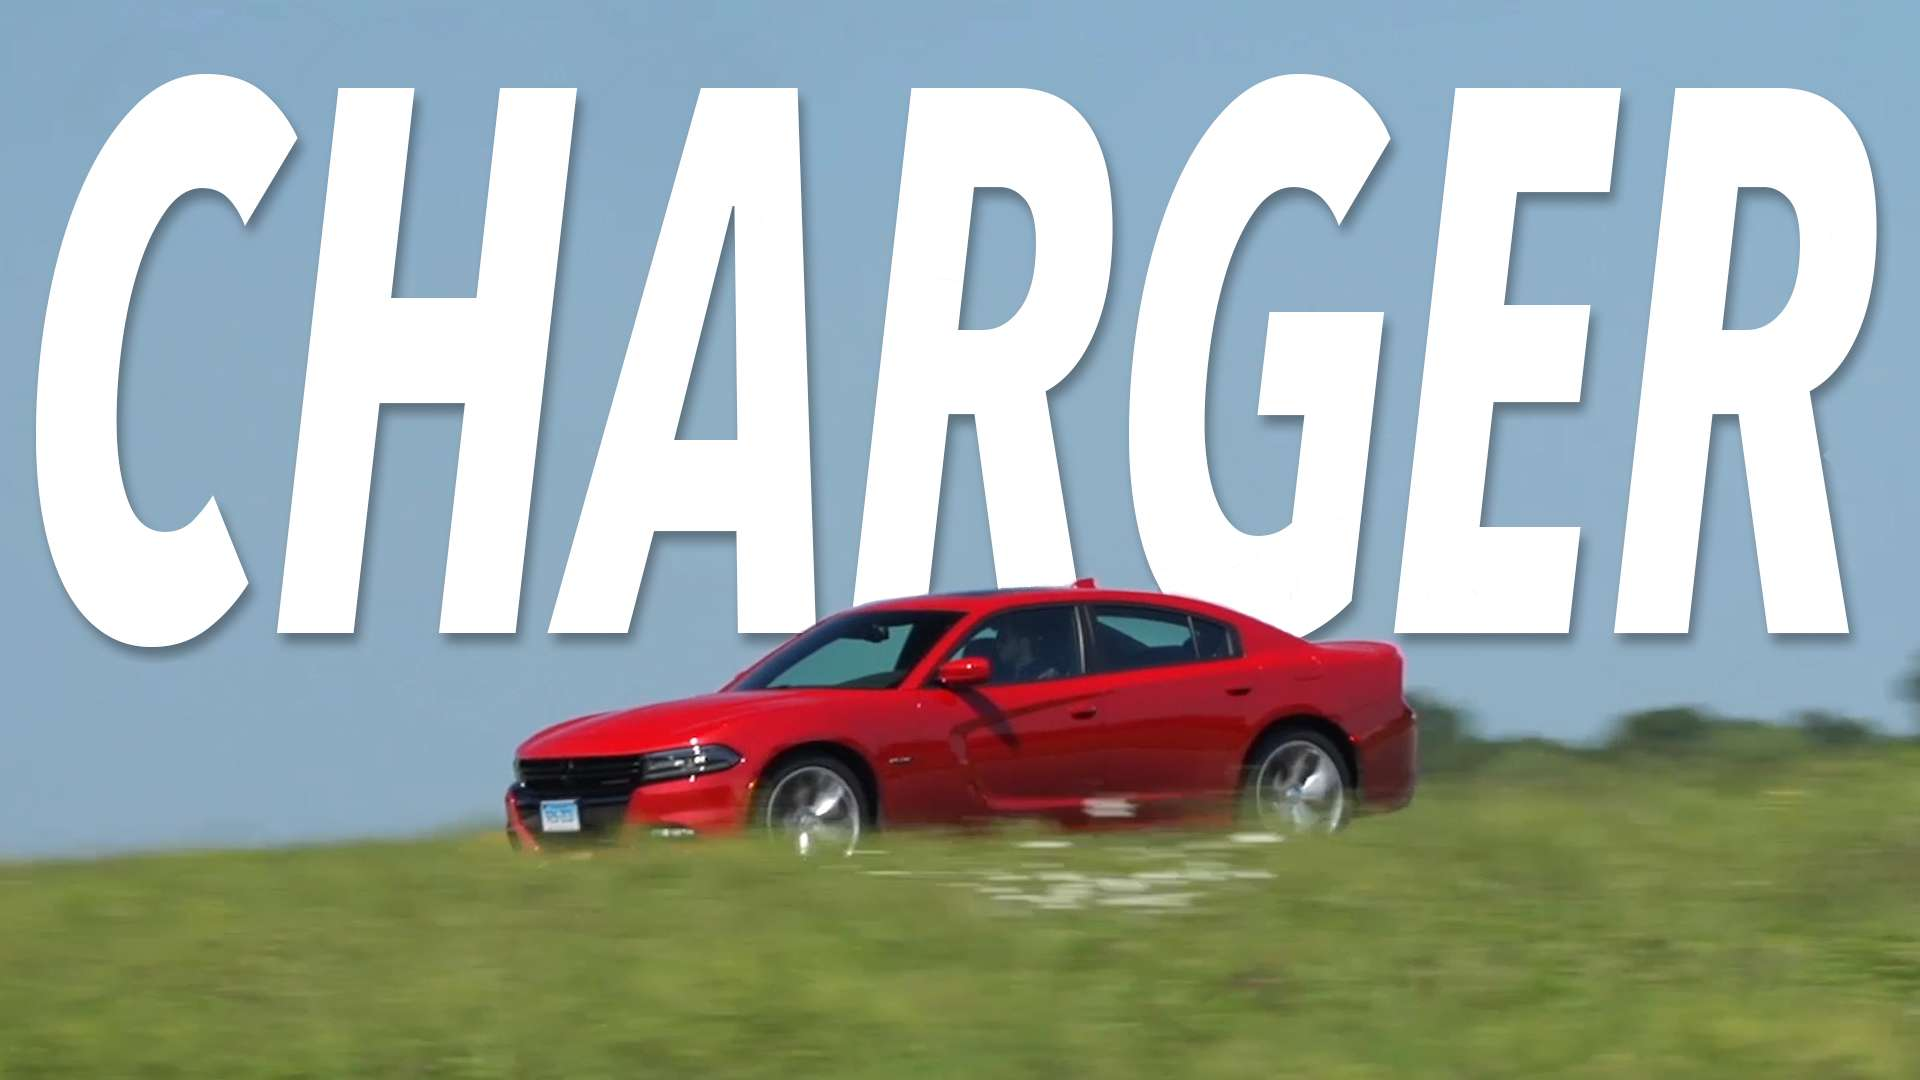 dating.com reviews consumer reports 2015 dodge charger